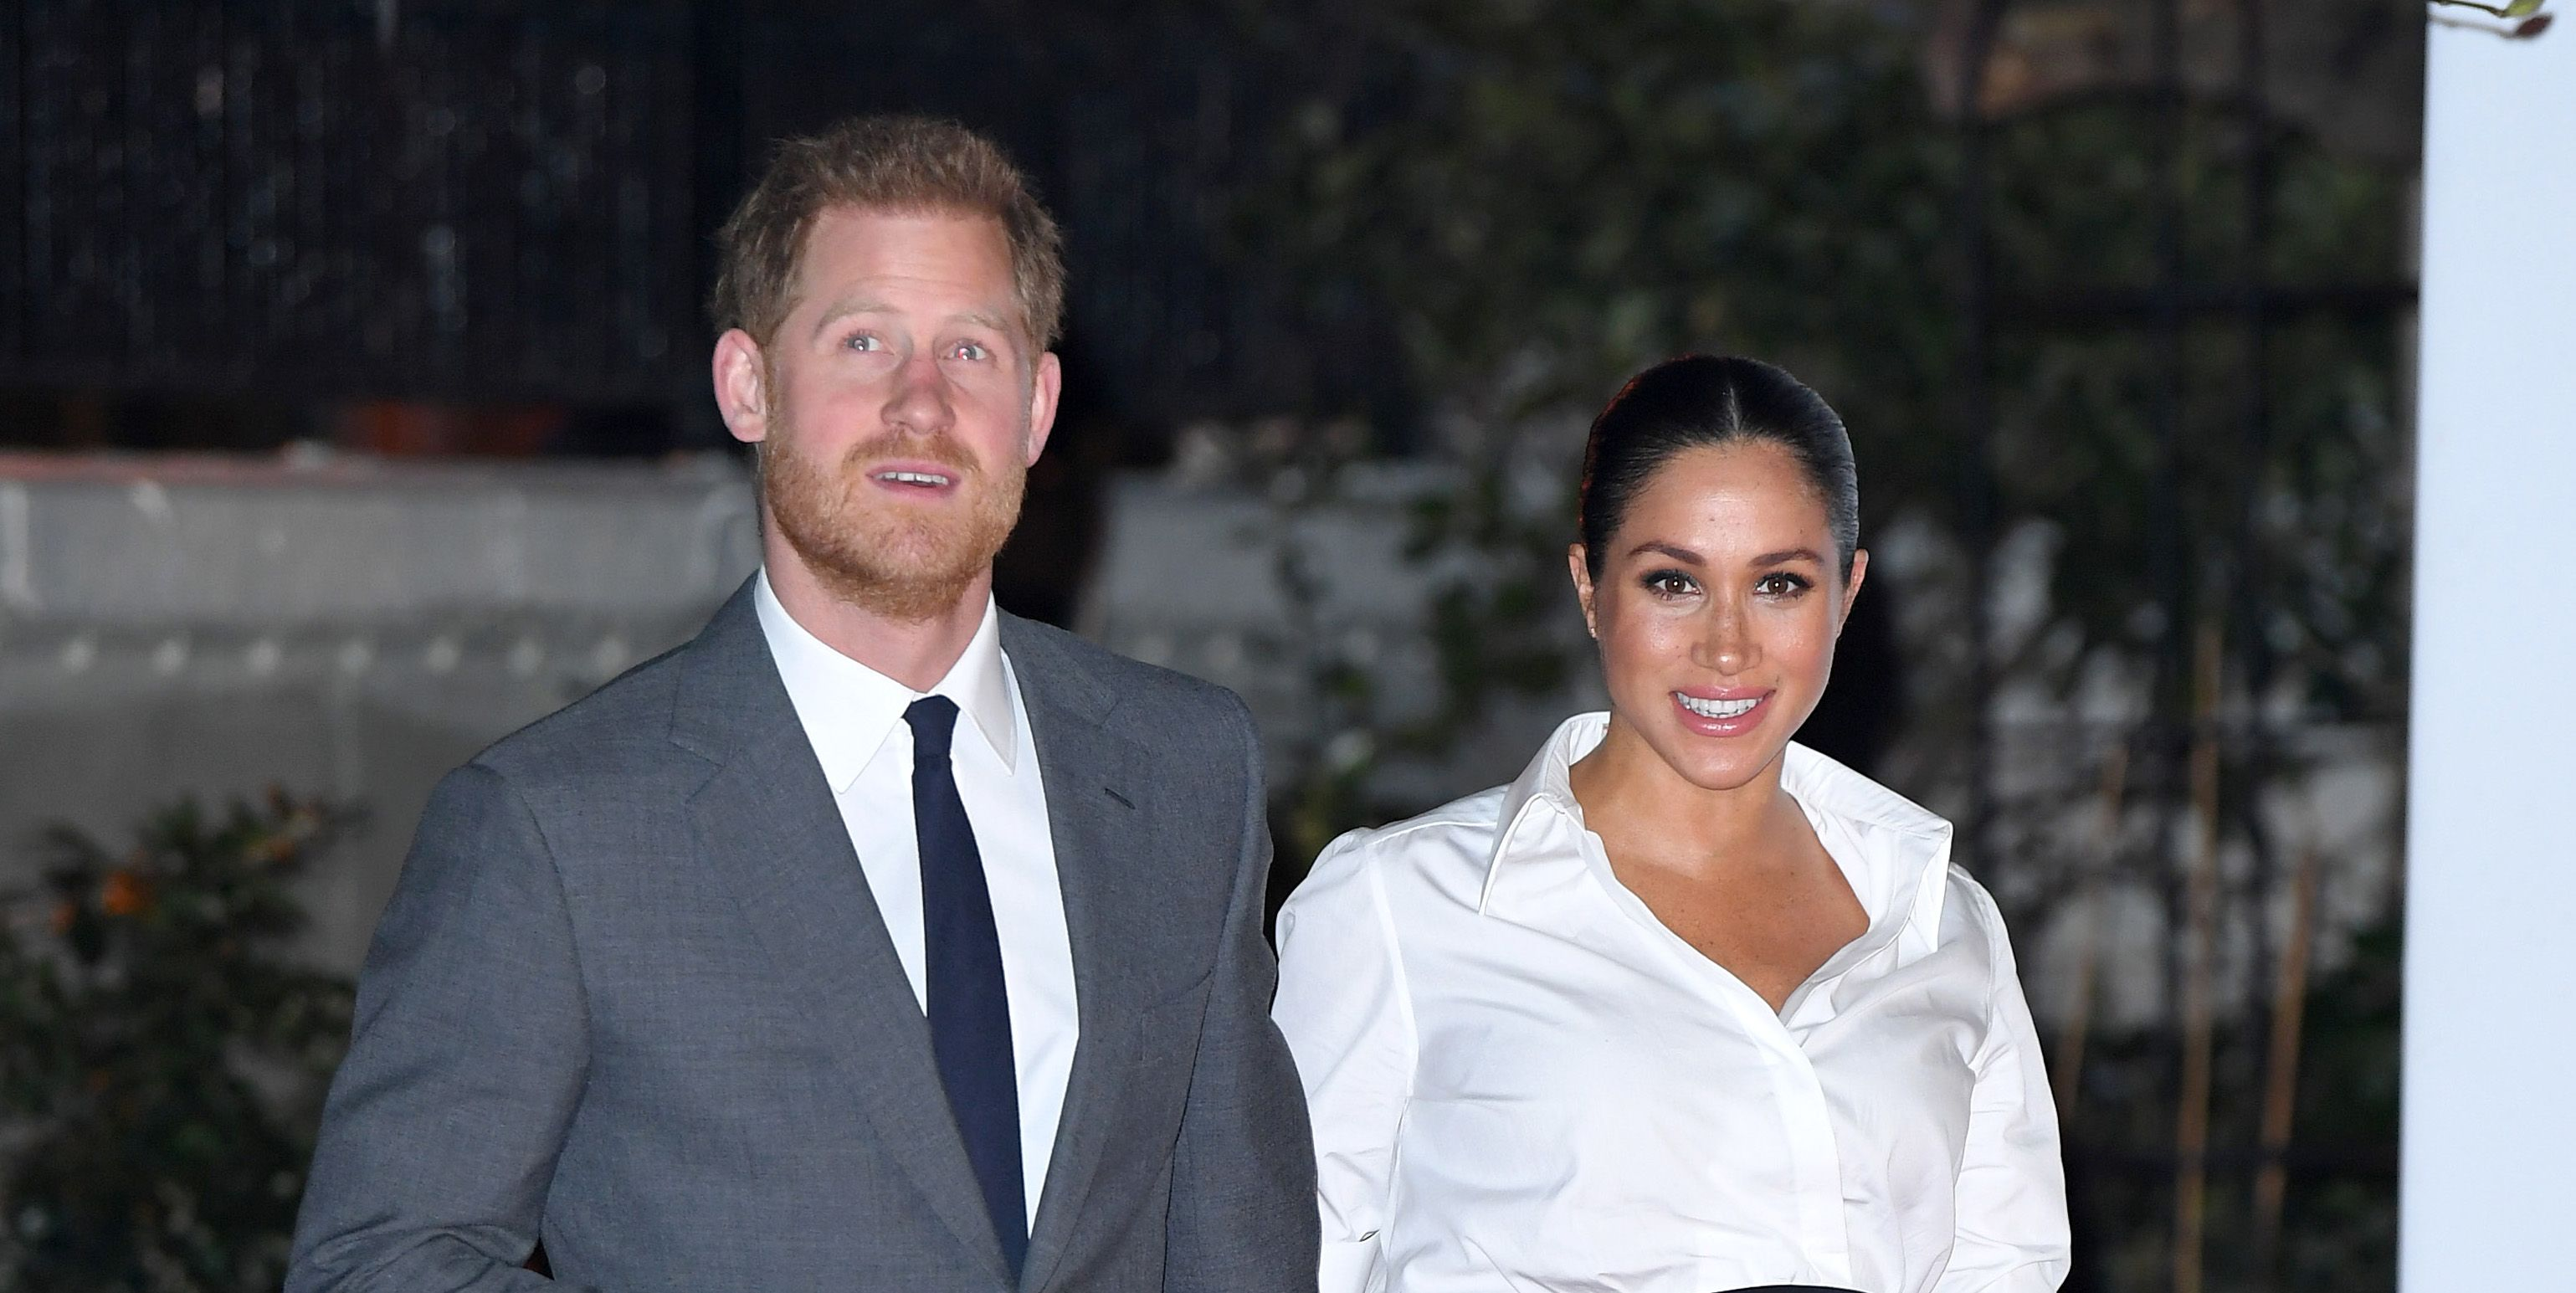 There will not be a commemorative merchandise collection for royal baby Sussex, the Royal Trust Collection confirms.